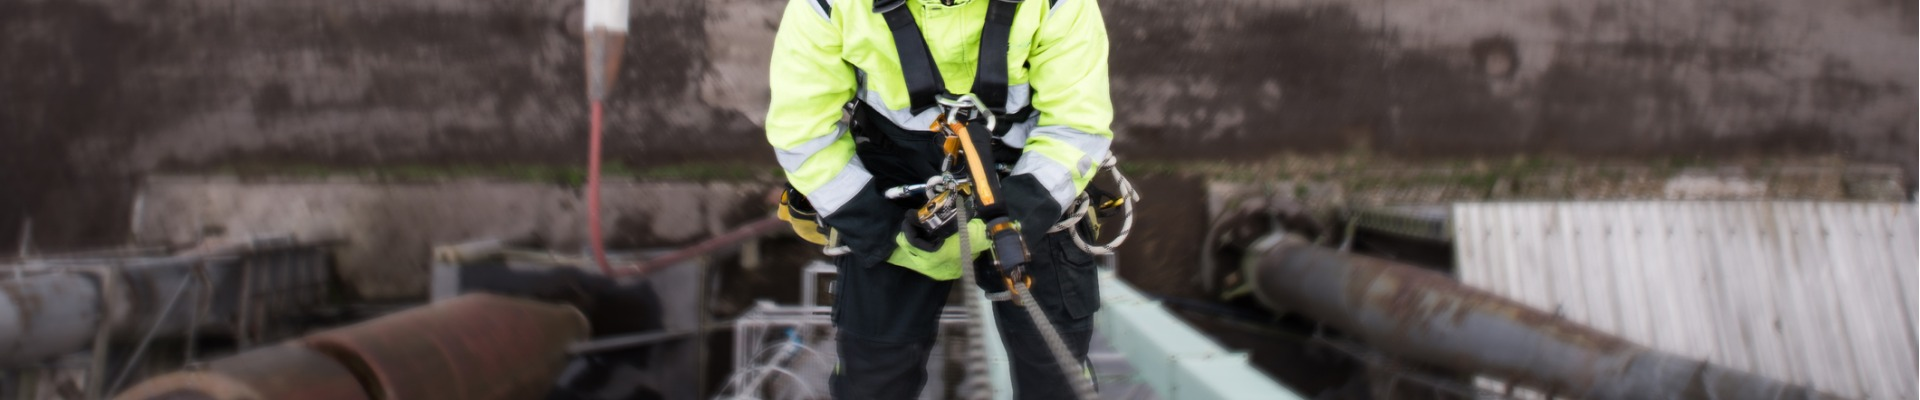 Hero Image for Fall Protection Training